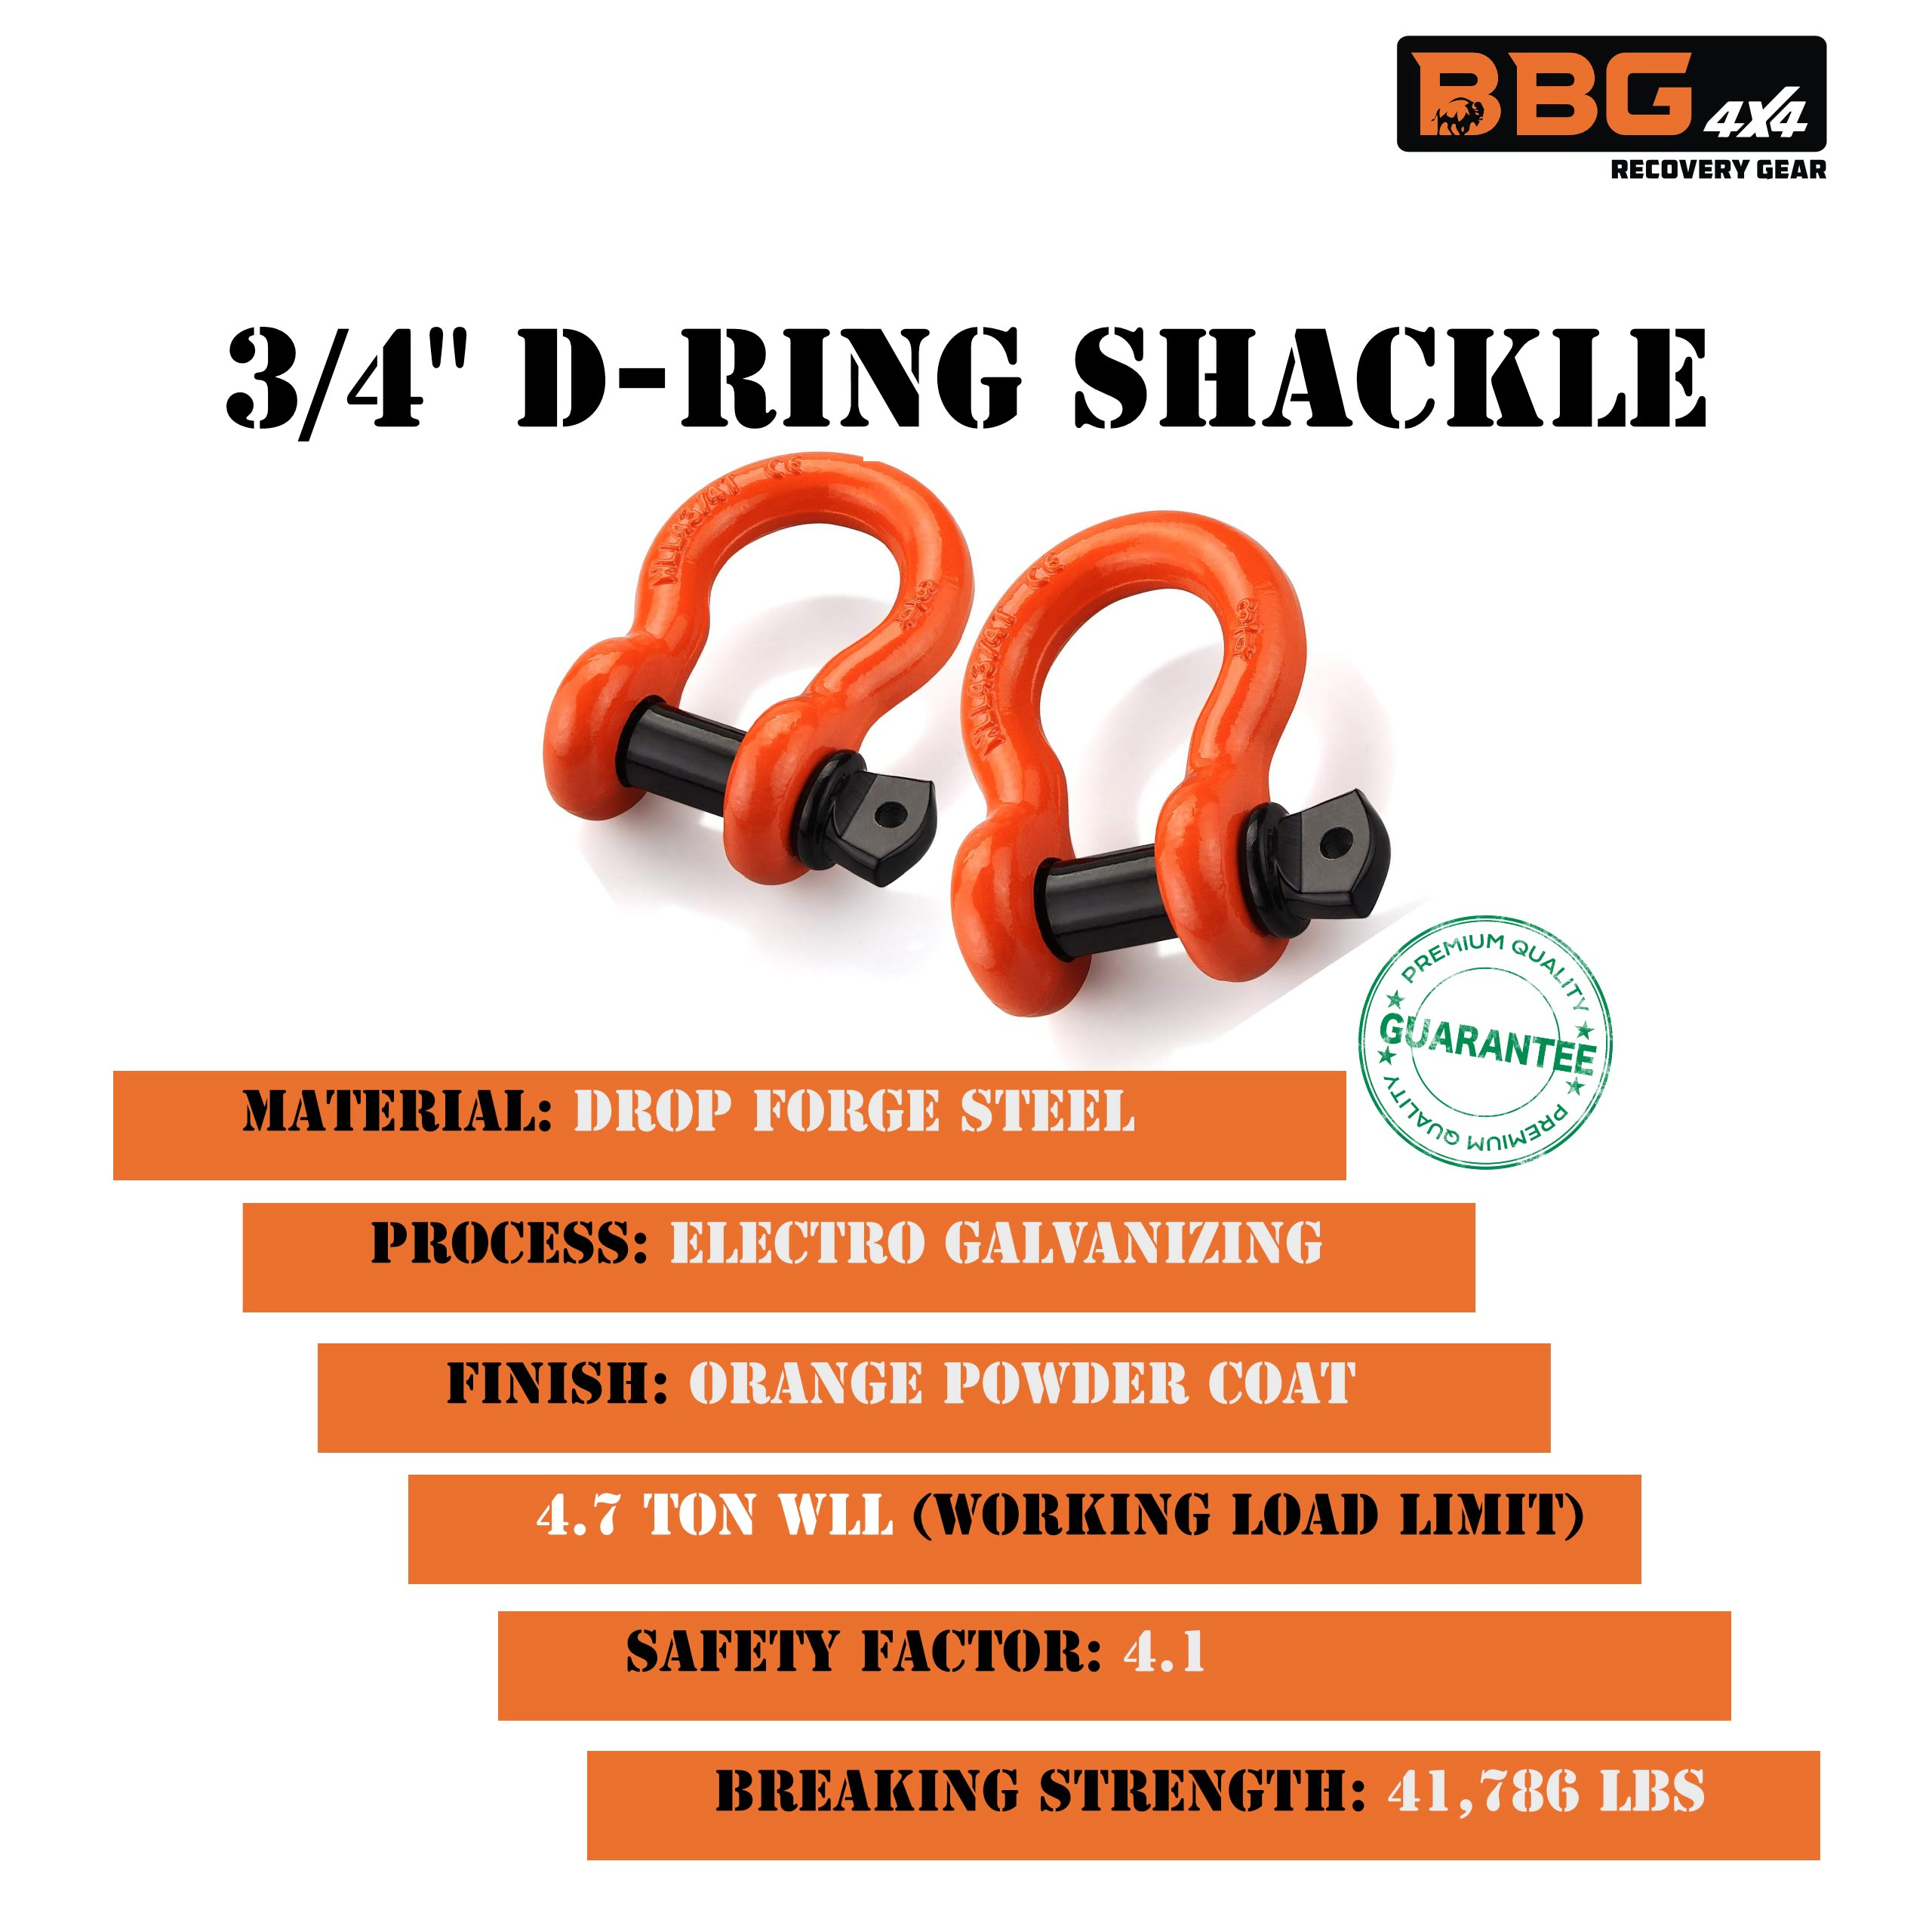 Capacity with 7//8 Diameter Pin and Isolator Washer Kits 57,000 lbs Max Break Strength Eowpower 1 Pack 3//4 Heavy Duty D-Ring Shackles 4.75 Ton 9,500 Lbs